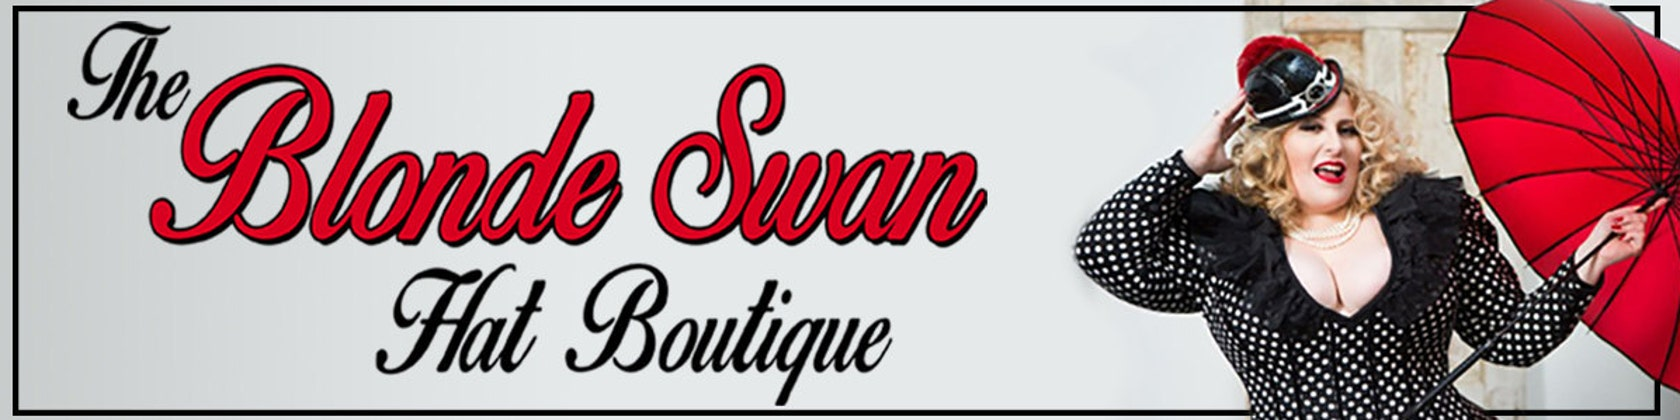 the blonde swan hat boutique by theblondeswan on etsy